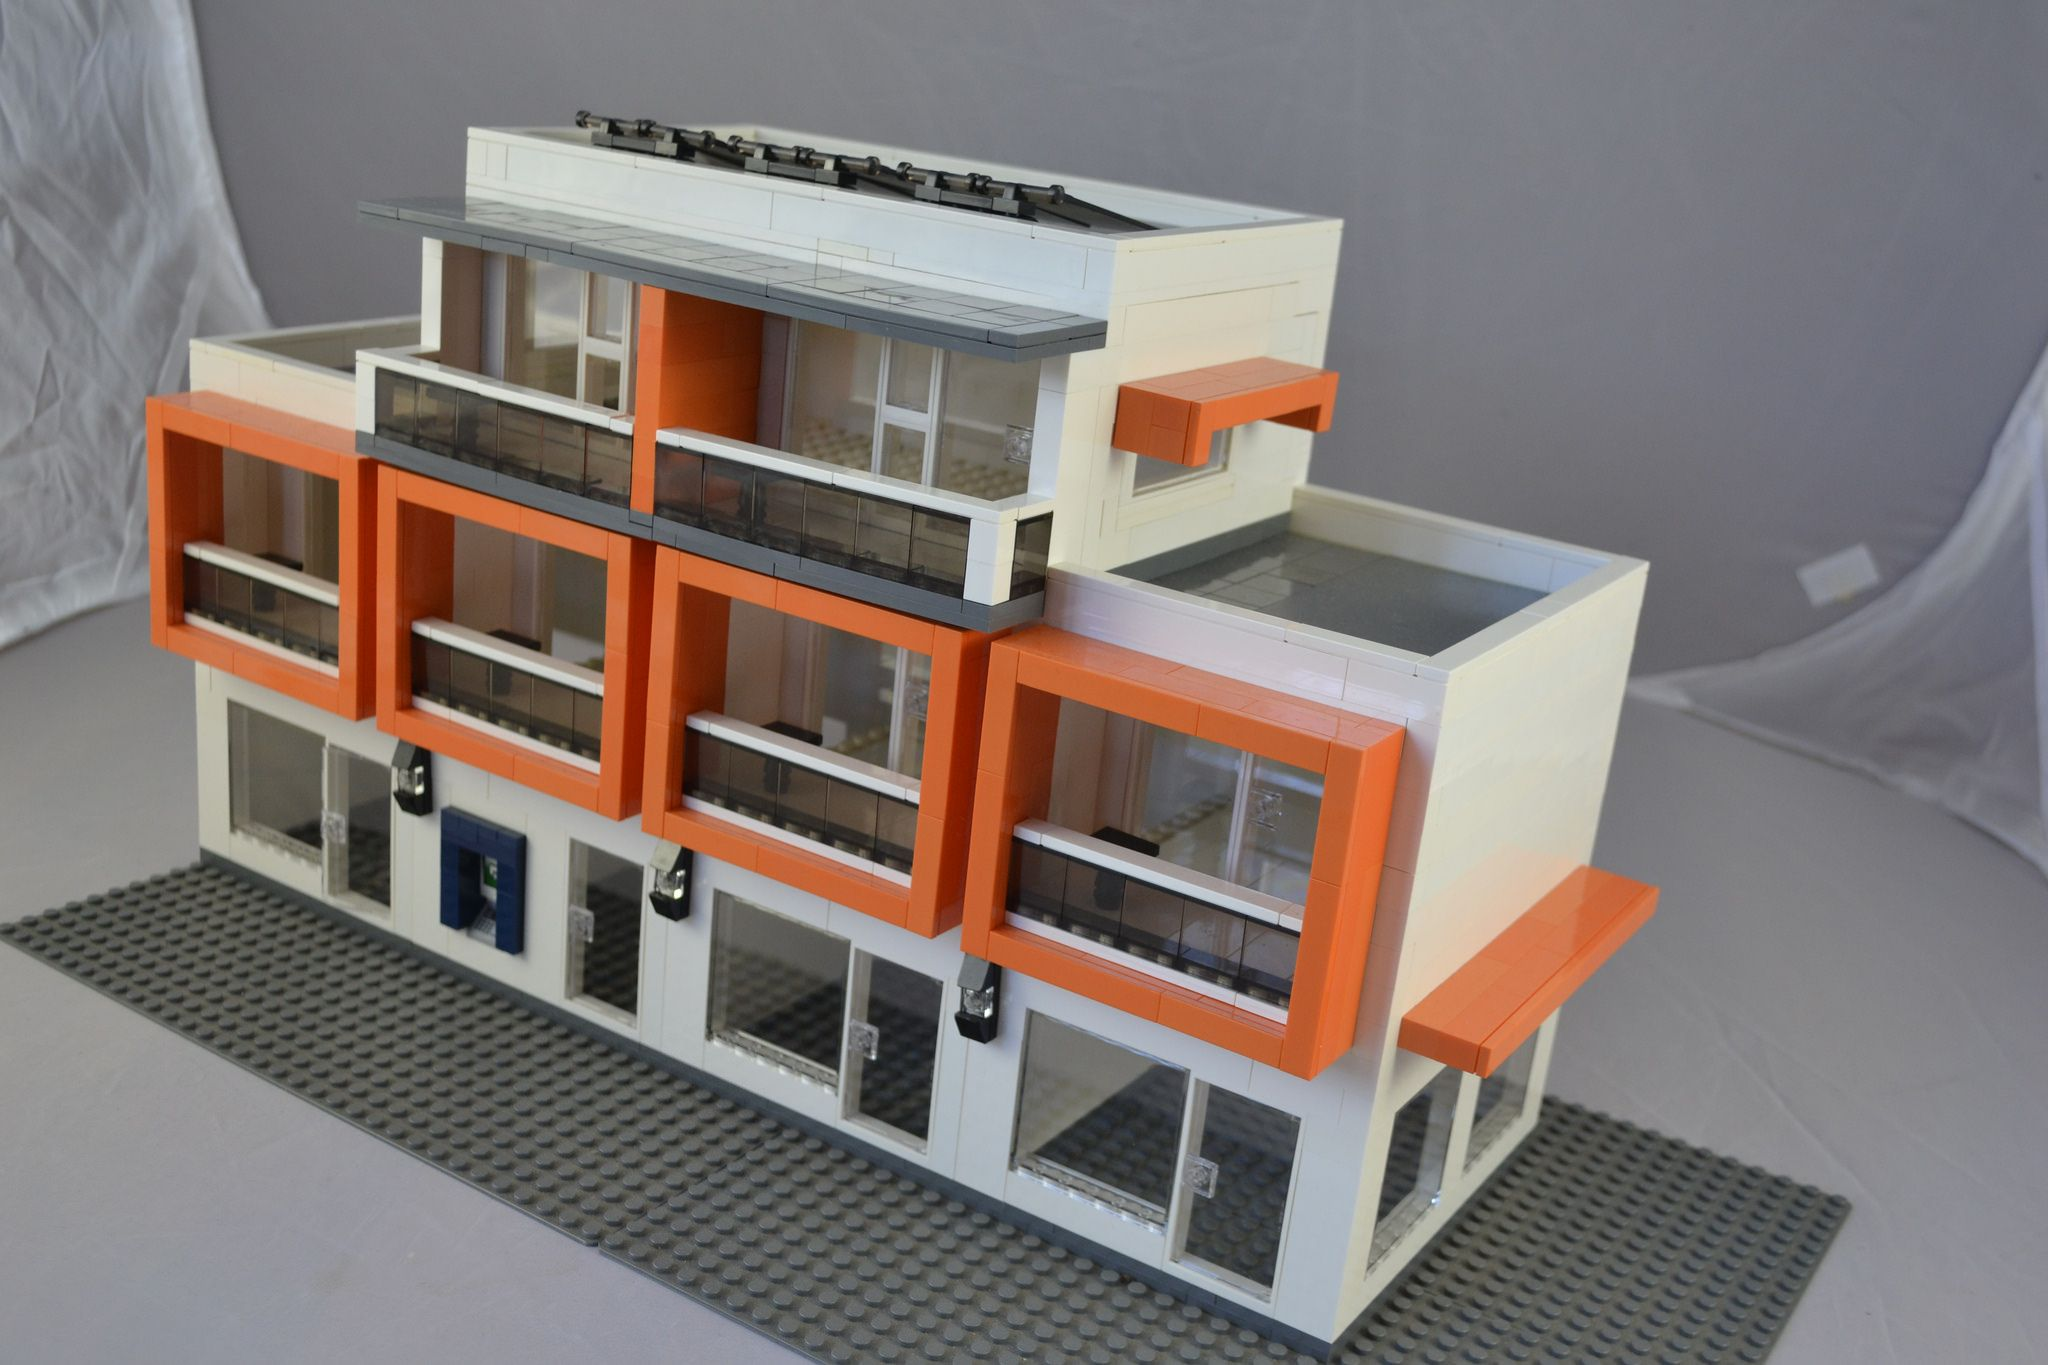 Best Modern Apartment With Images Lego Architecture Lego 400 x 300